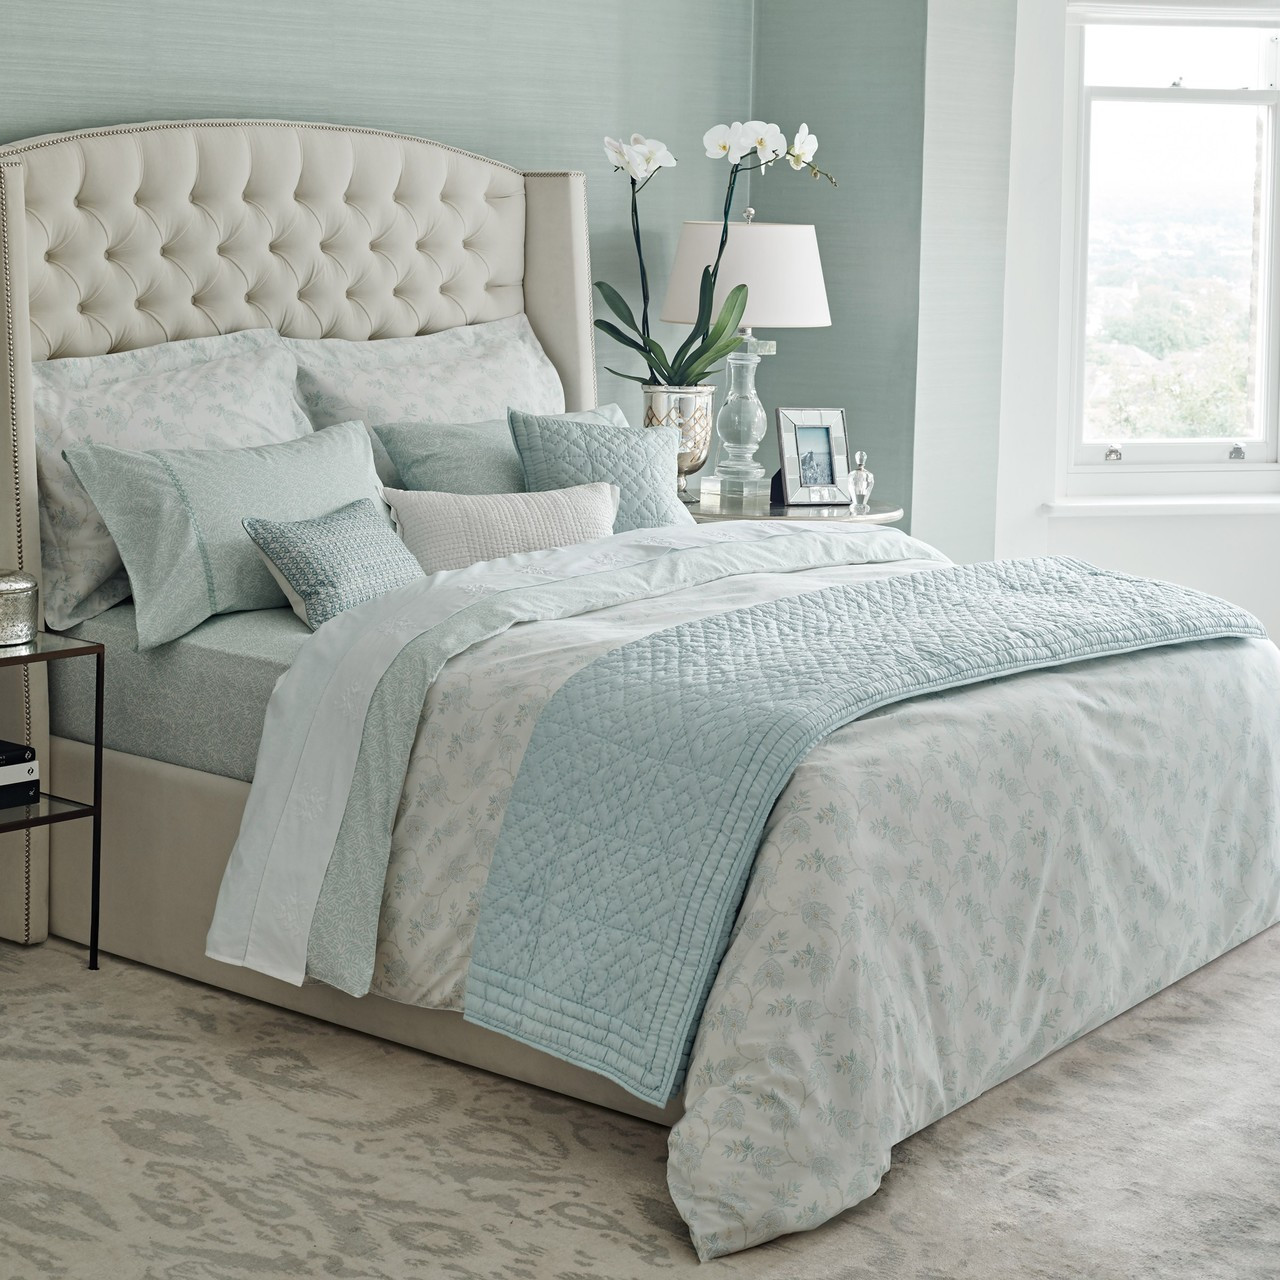 Duck Egg Blue Bedroom Pictures Bedroom Design Concept Vintage Bedroom Lighting Master Bedroom Design Nz: Fable Eram Bedding In Duck Egg